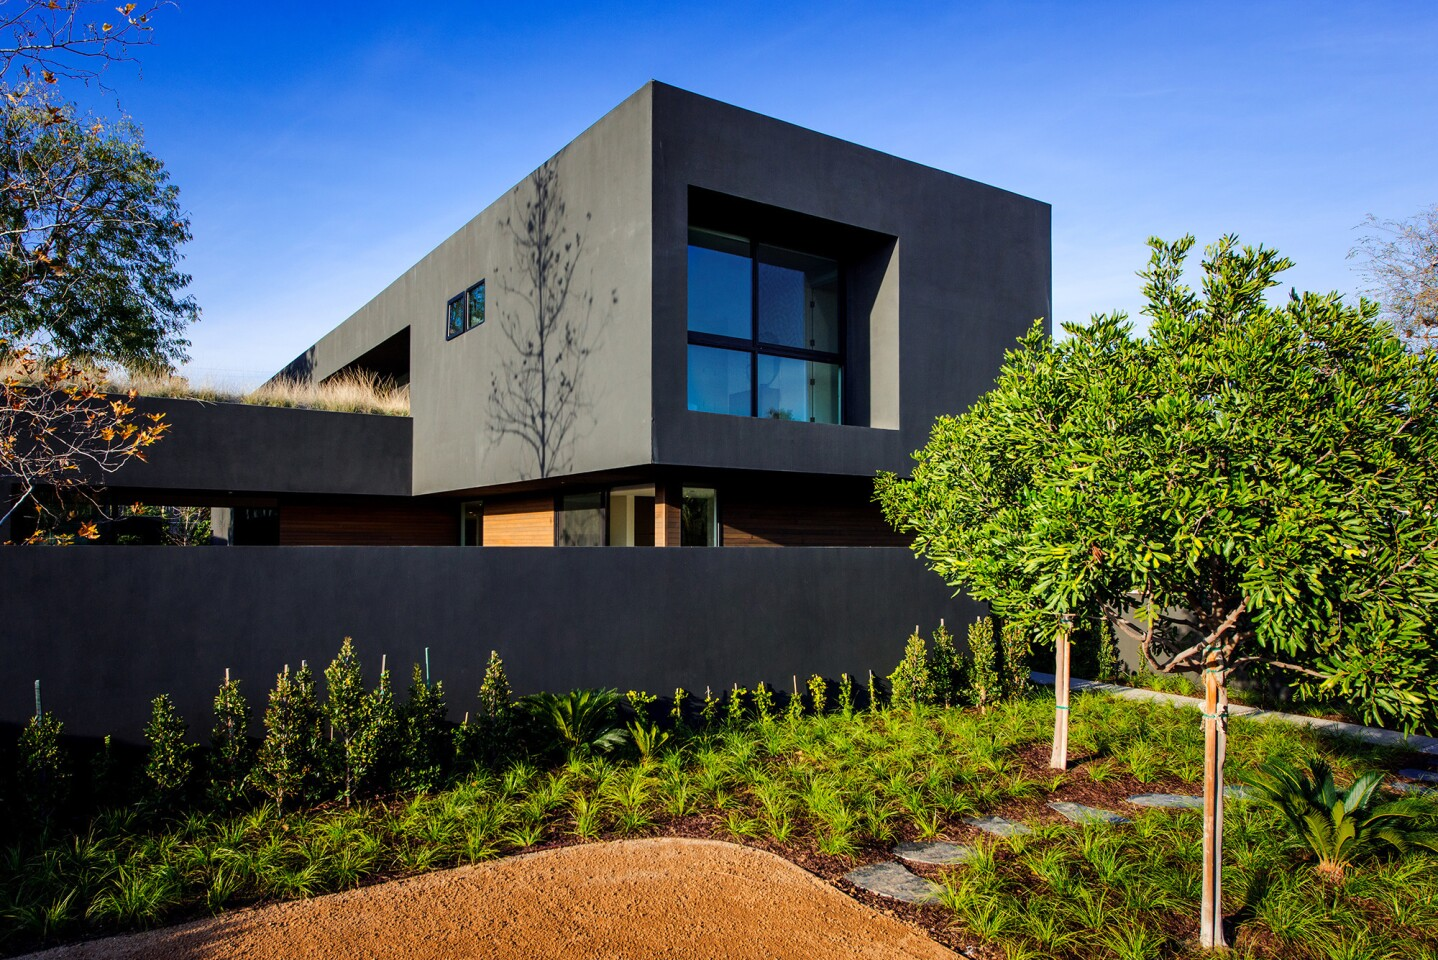 Hot Property | Black for homes is trending, inside and out